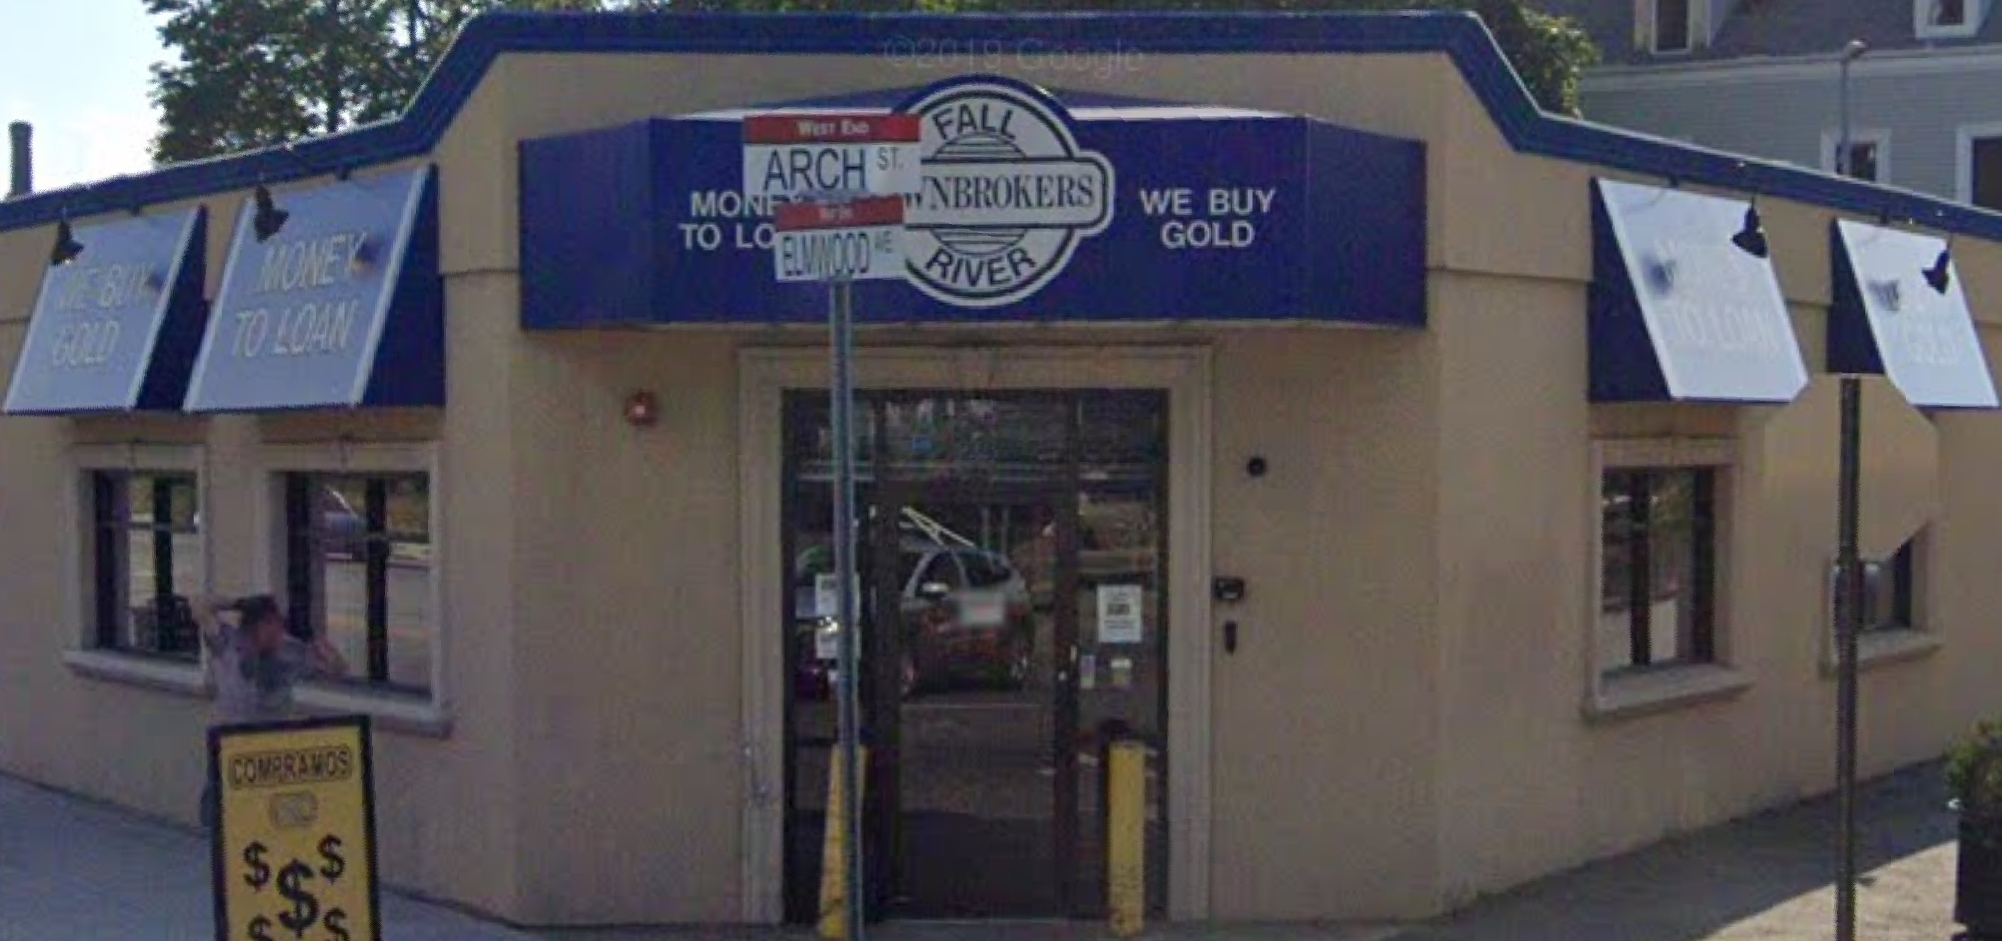 Fall River Pawn Brokers - 7 Elmwood Ave, Providence, RI 0707